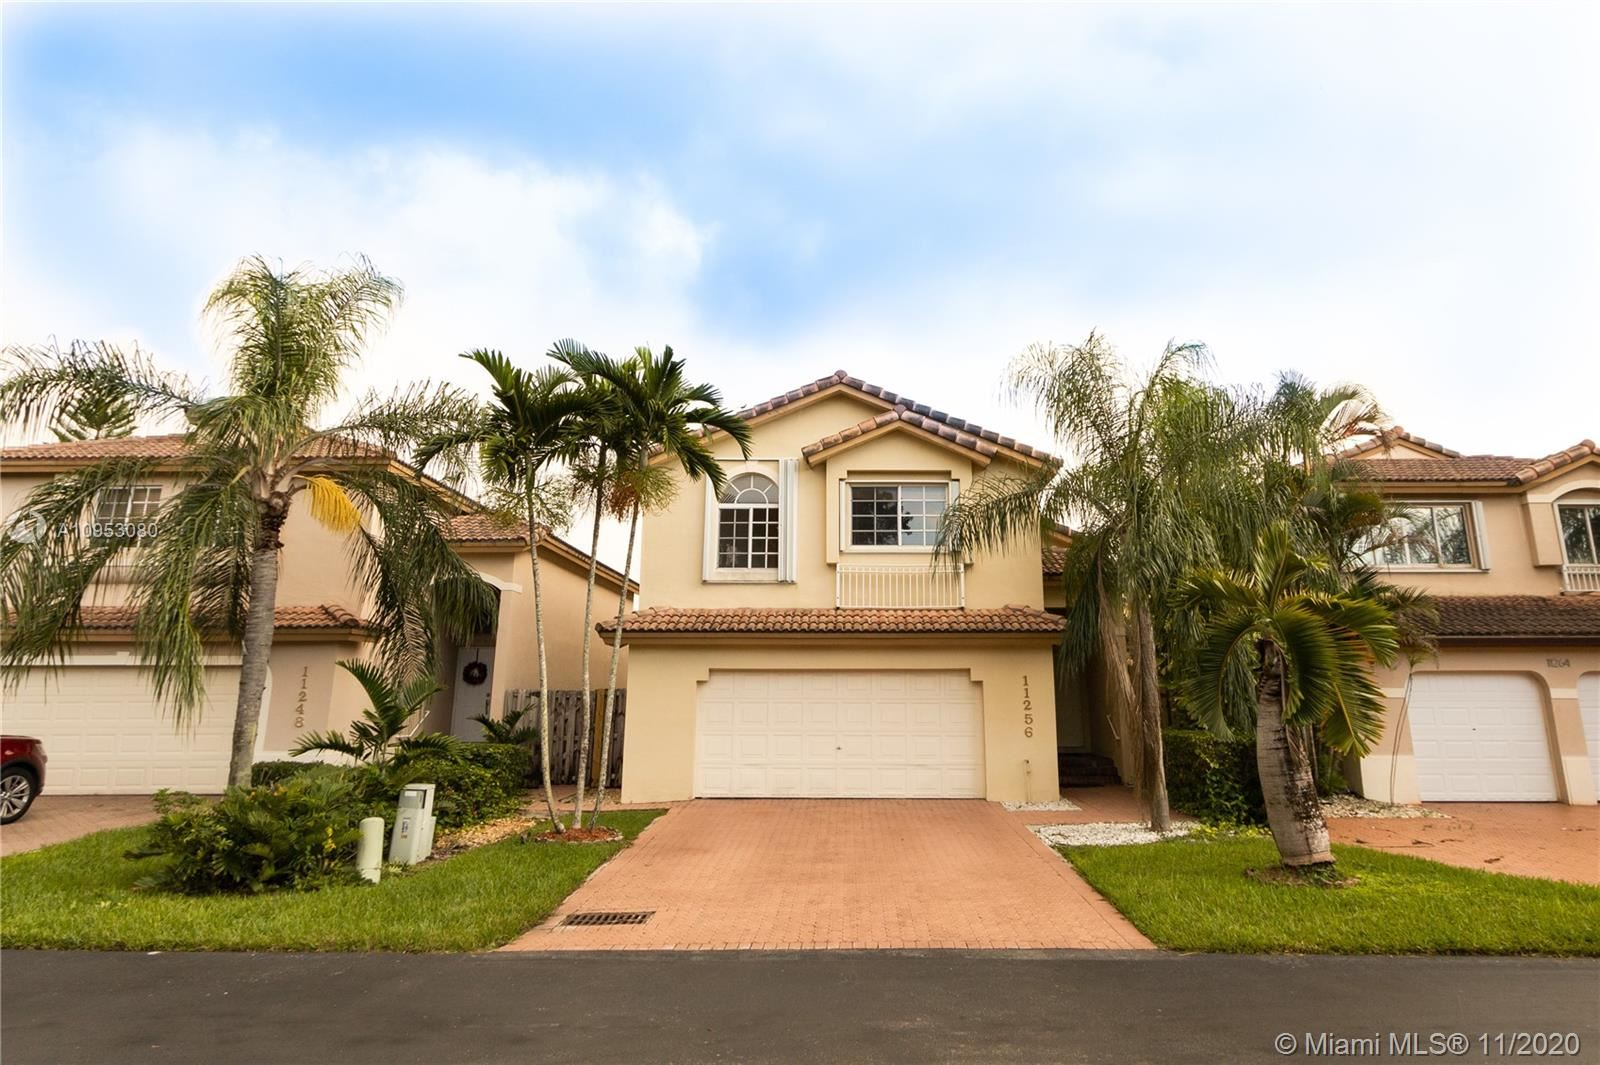 11256 NW 51st Ter, Doral, FL 33178 - #: A10953080